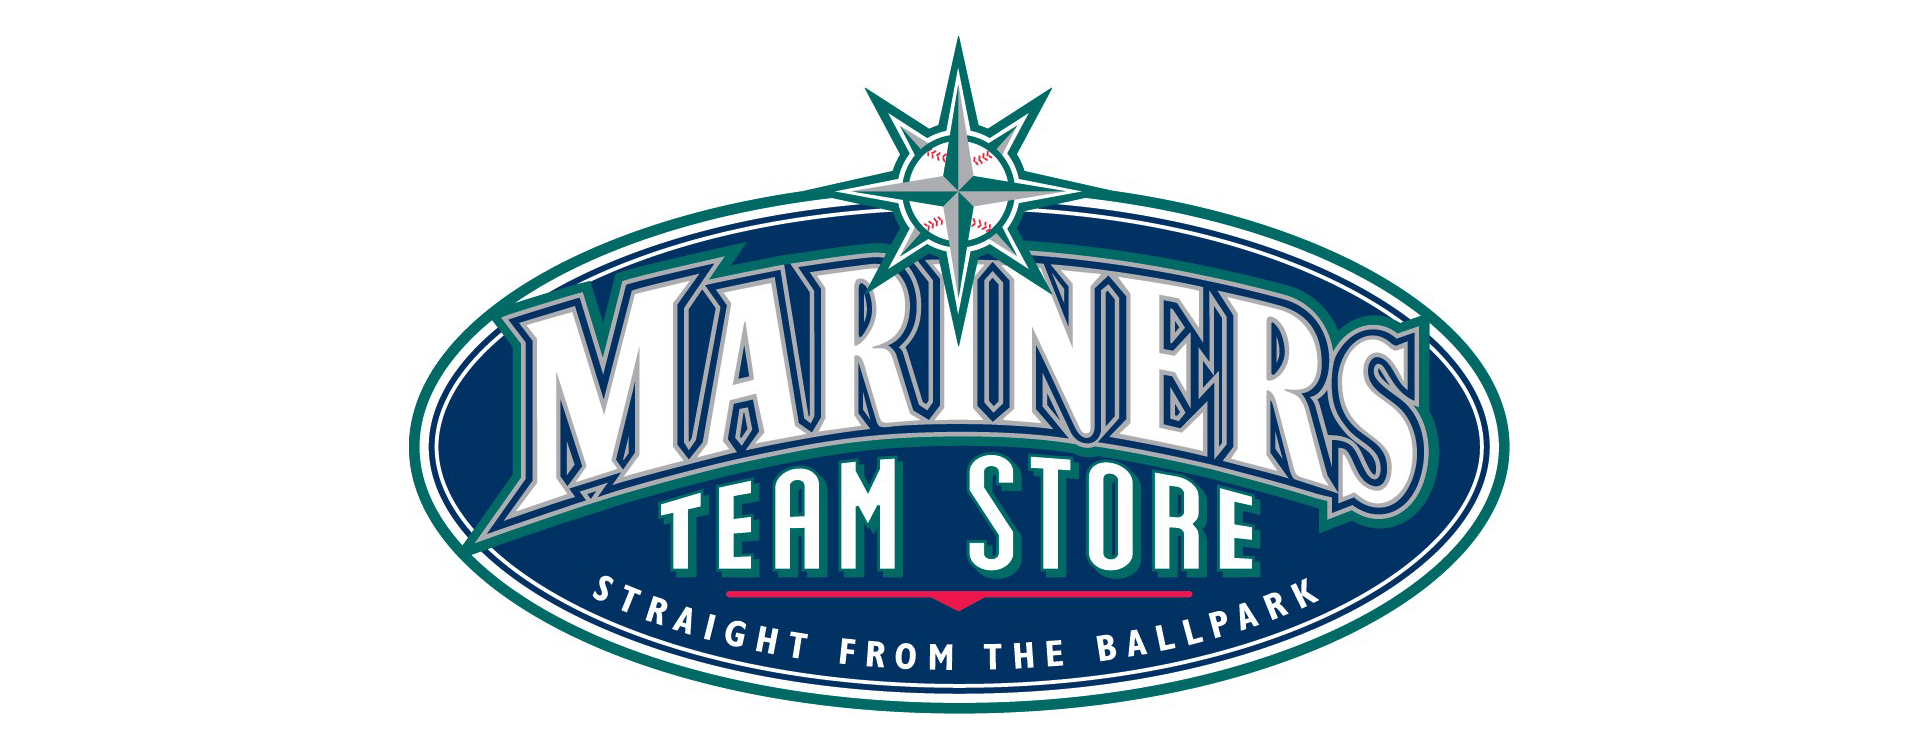 Seattle Mariners Team Store